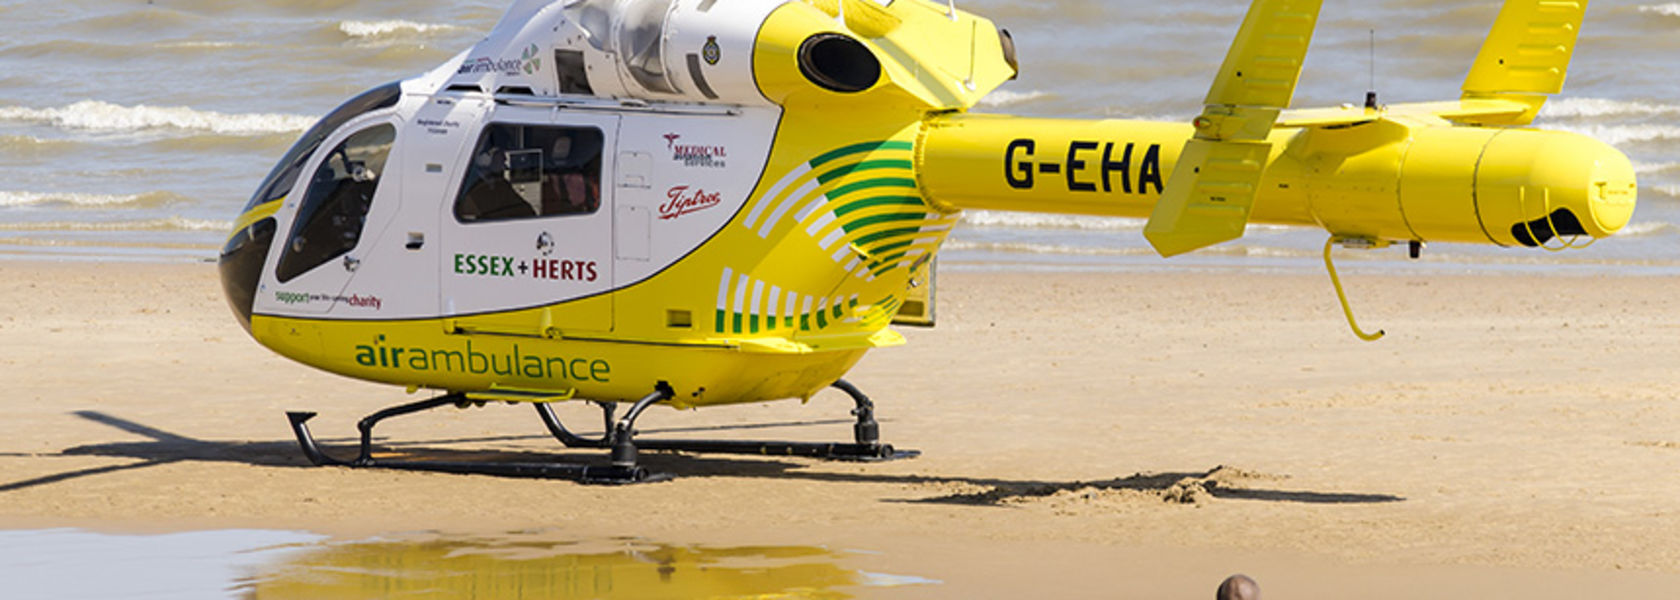 Emergency Medical Evacuation - are you prepared?